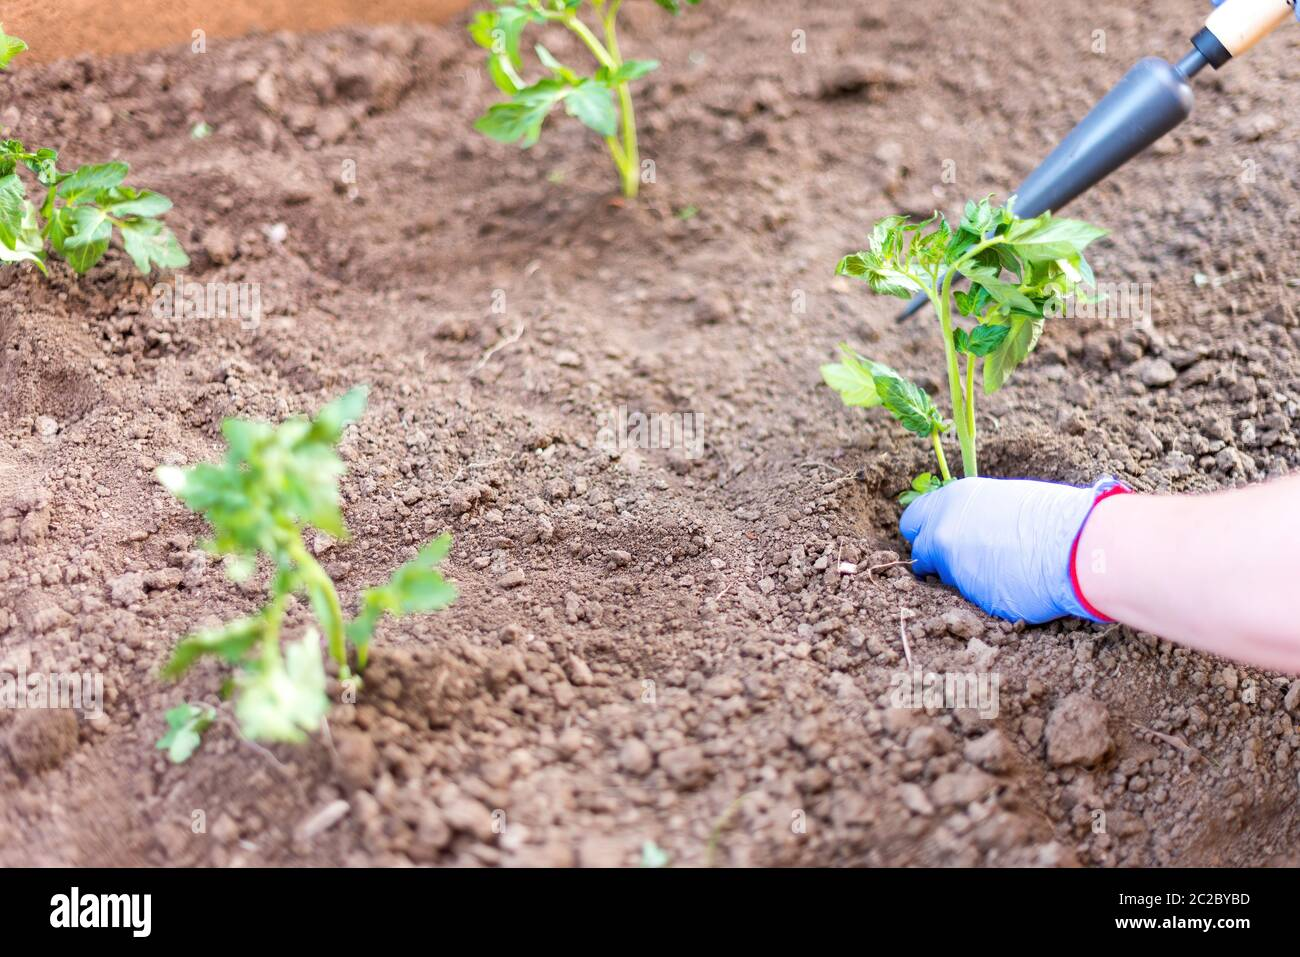 High angle of unrecognizable person in gloves putting small plant in hole in soil while working in garden Stock Photo